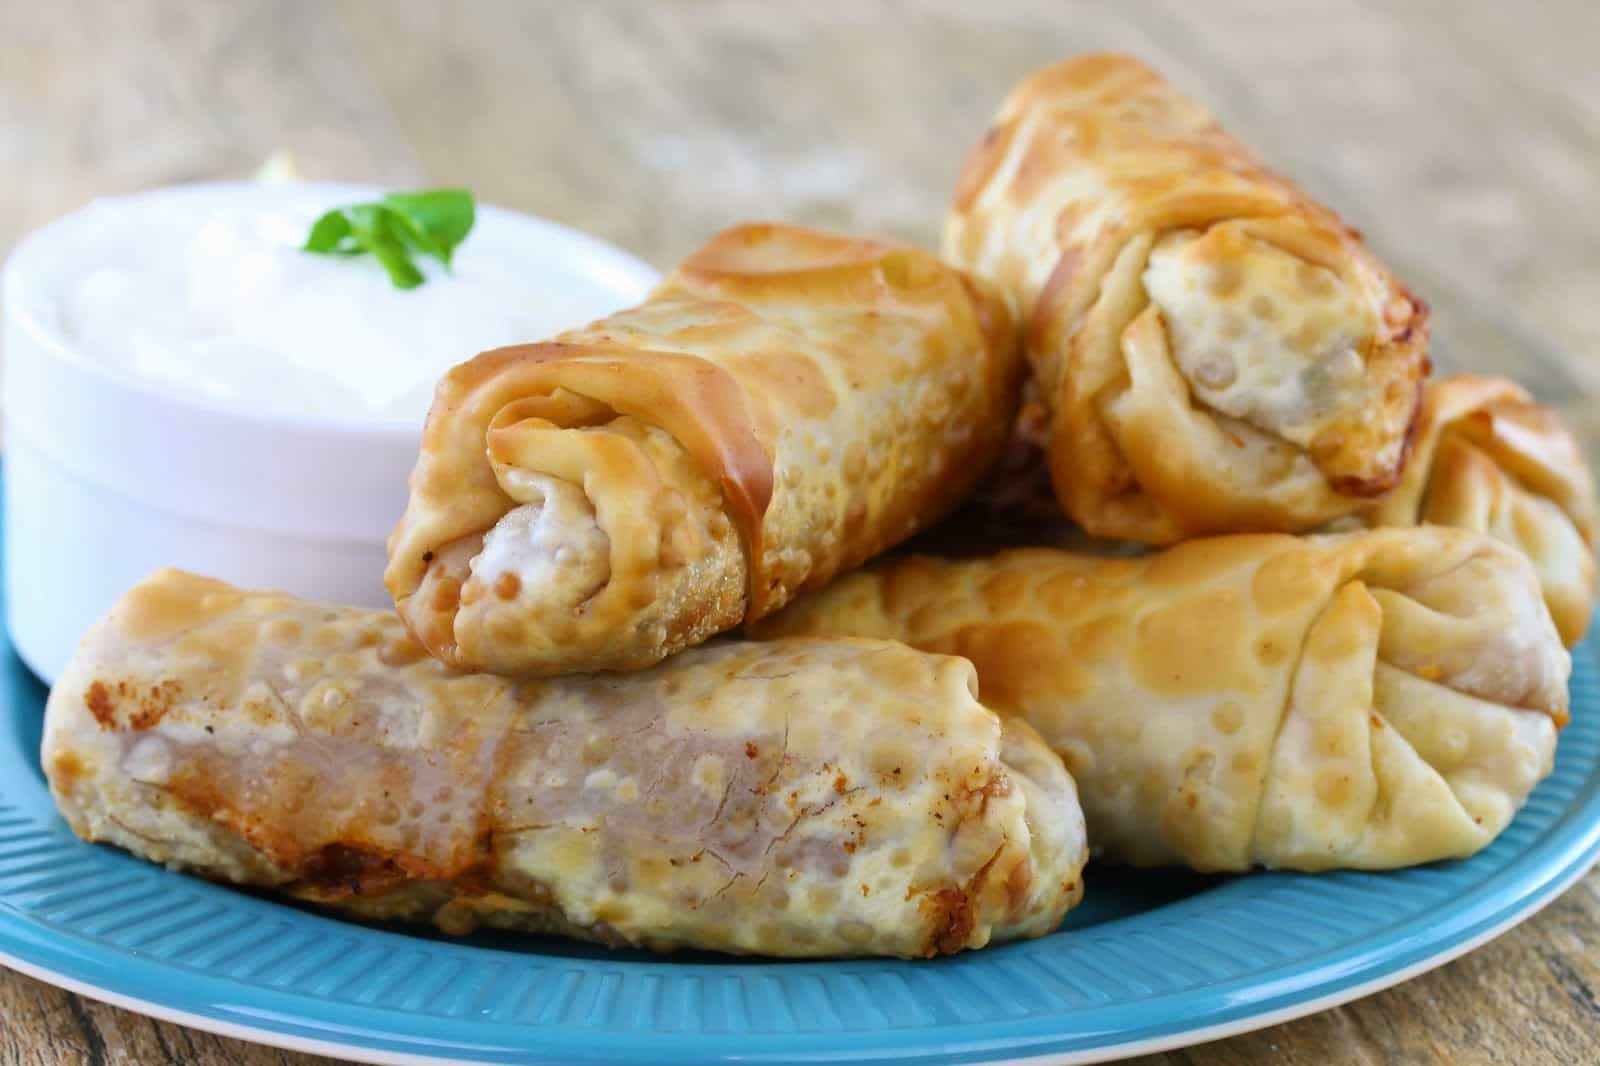 A stack of Mexican egg rolls